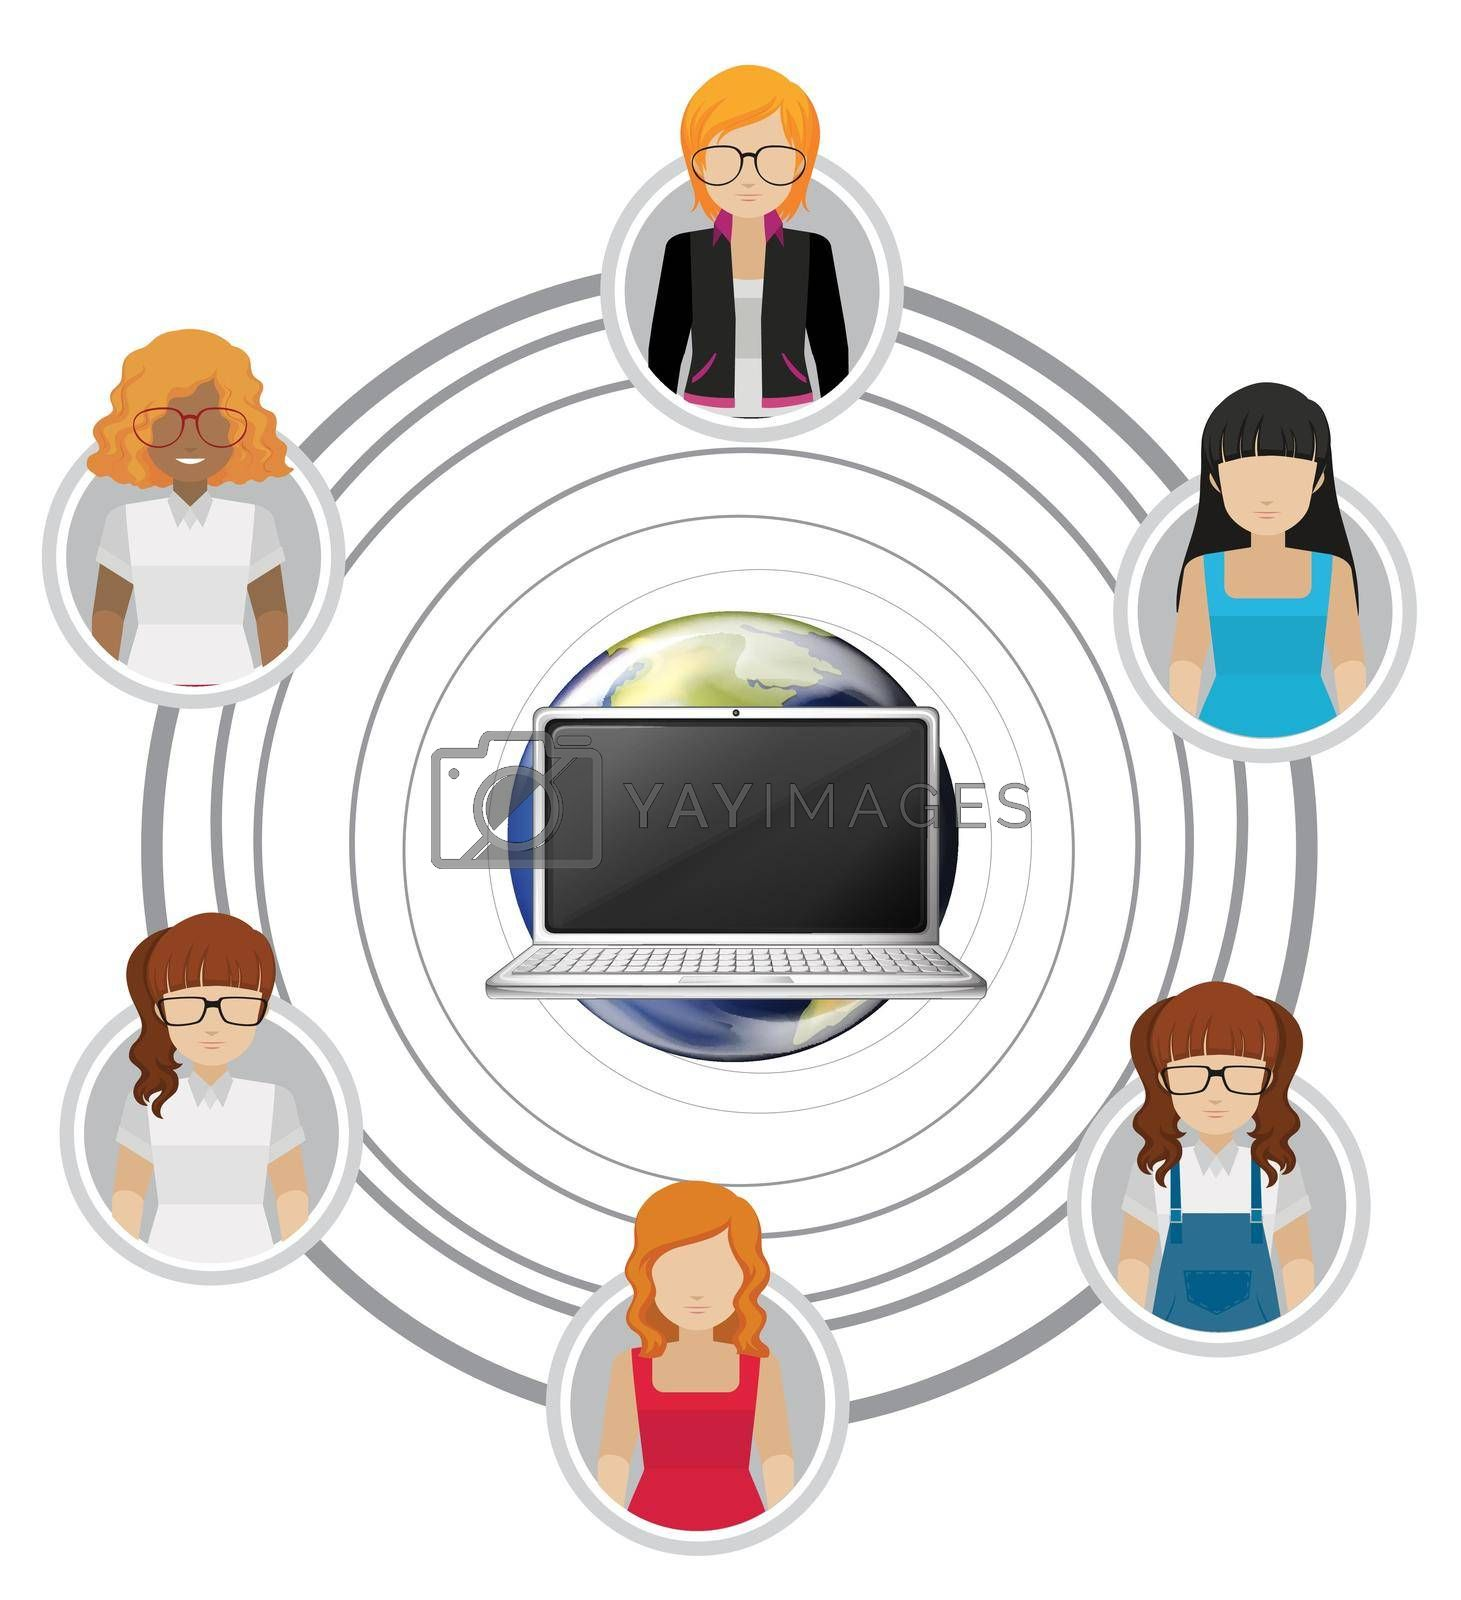 Royalty free image of People connected by technology by iimages